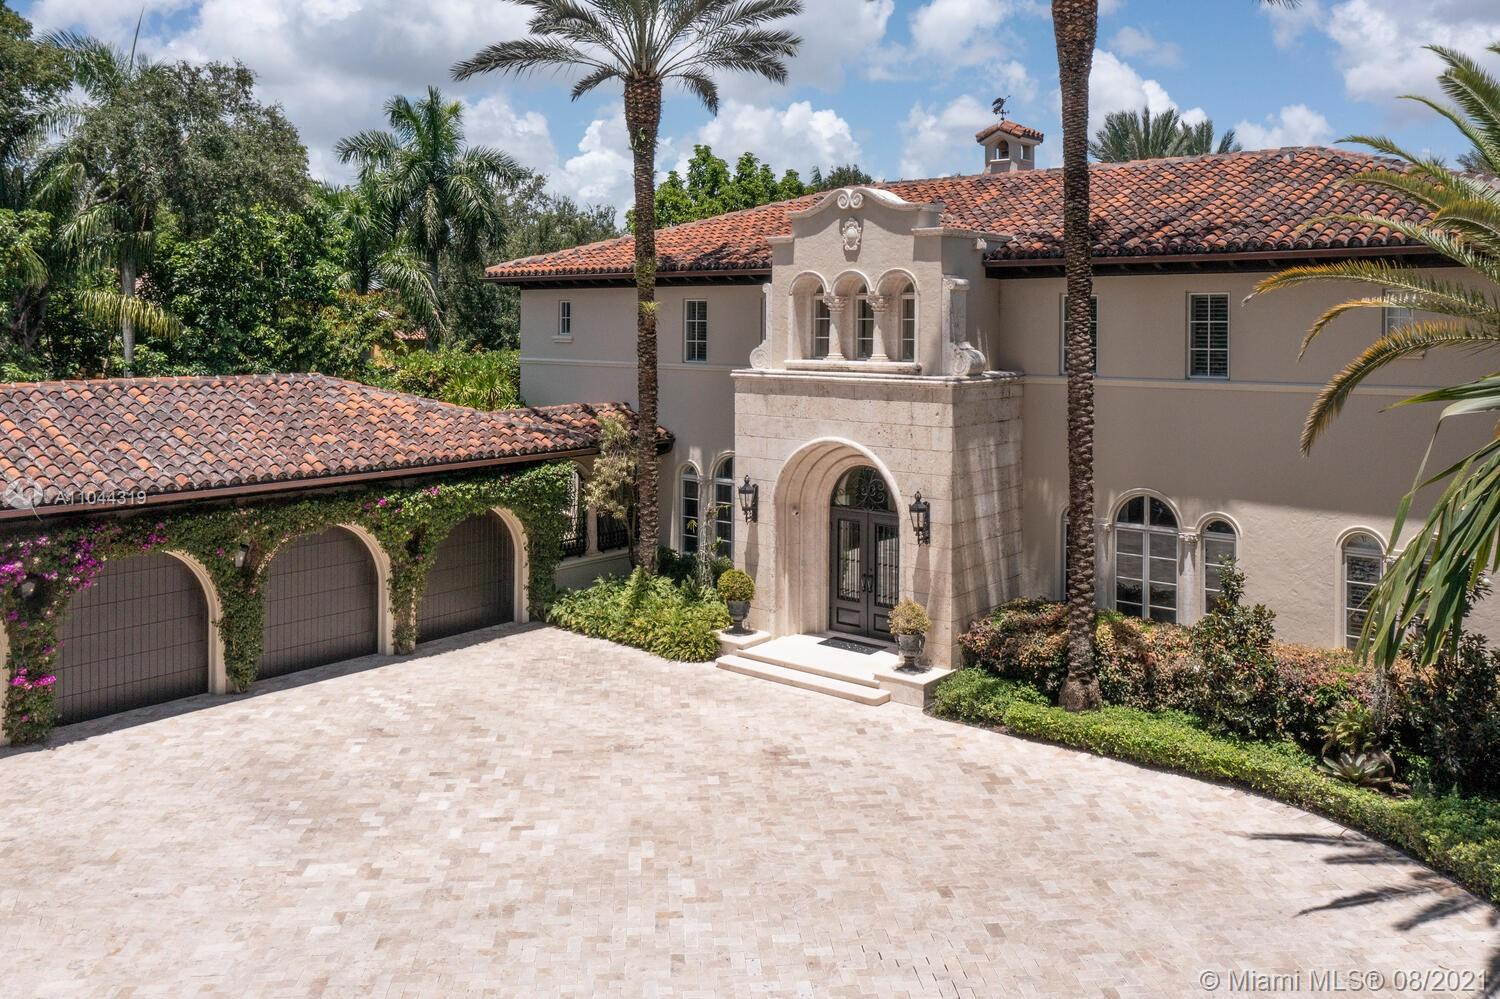 Elegant estate in the neighborhood of sought-after Ponce Davis. This custom gated 12,565 sq. ft. home's layout is best for entertaining. Main house has 5 en suite bedrooms & 2 half baths, a gym + library/office + wine tasting room & 1,100 bottle wine storage room + billiards room + family room & more.  A 1/1 guest house with a kitchen and ample living area completes this gem.  A state-of-the-art kitchen offers a professional Viking gas range + Miele coffee maker + Sub-Zero fridge & more.  The summer kitchen has a chef's gas range, sinks, bar plus an adjacent massage room.  Additional details: a state-of-the-art sound system, full house generator, professionally landscaped hidden gardens and fountains, as well as a 4-car garage. This residence has all you need for an extended time at home!